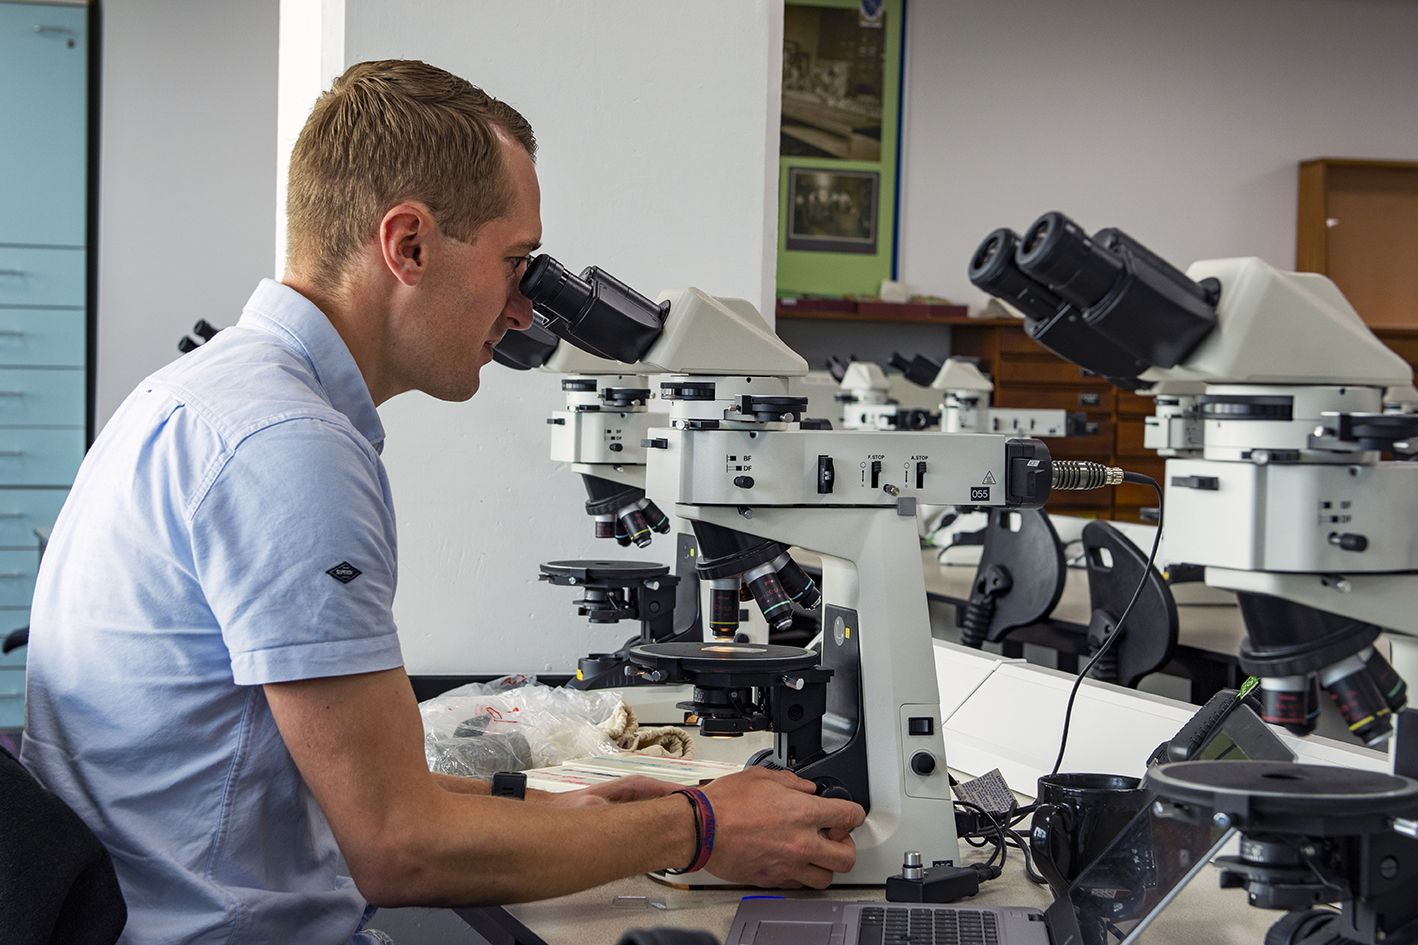 Man in blue shirt looking through microscope on a desk.